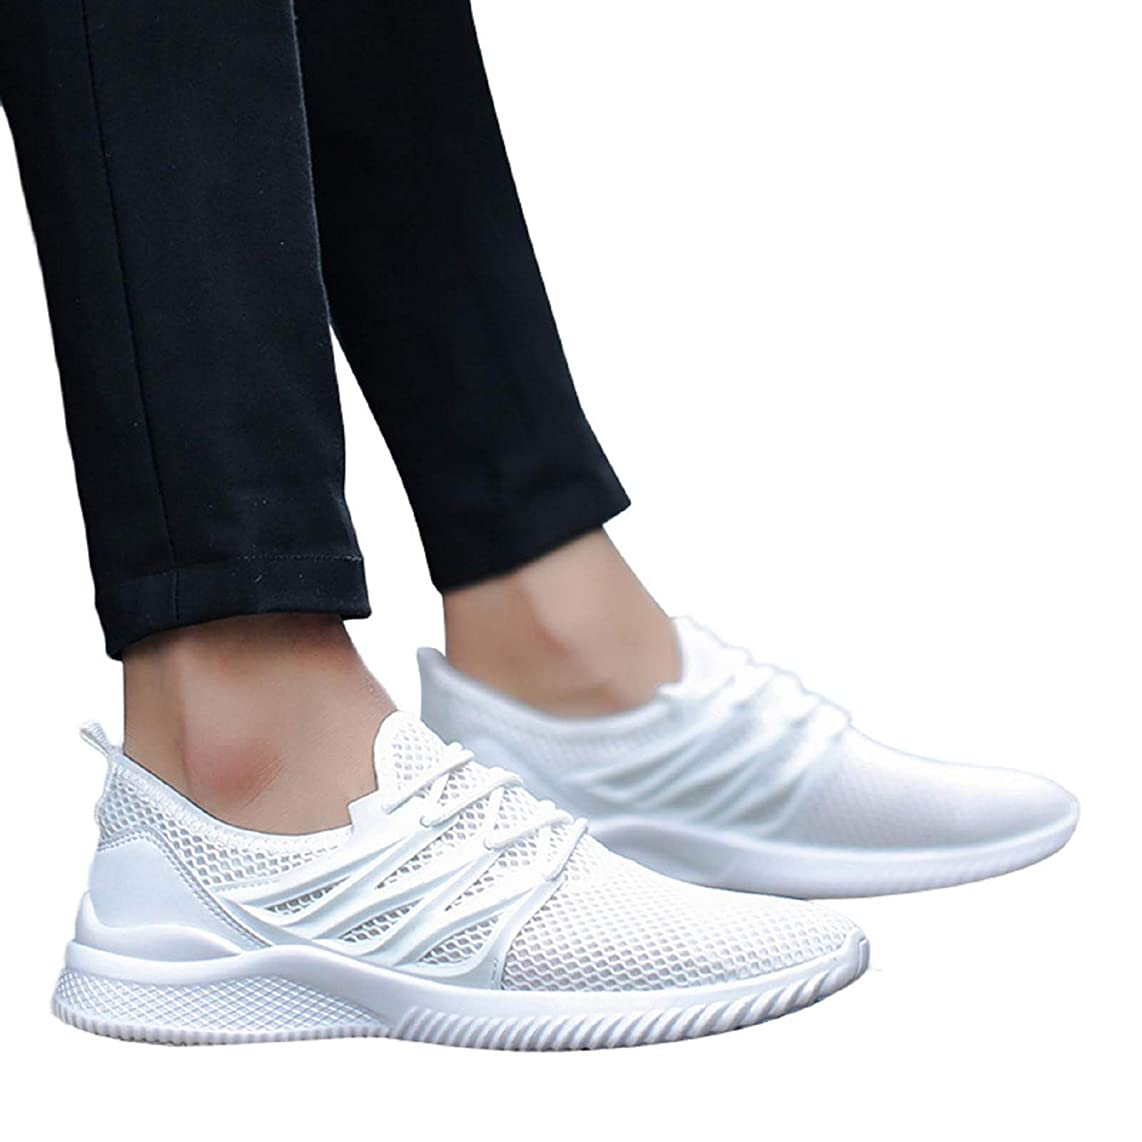 nanzhushangmao Men's Lightweight Lace Up Casual Walking Shoes Breathable Athletic Fitness Jogging Tennis Racquet Sport Cycling Running